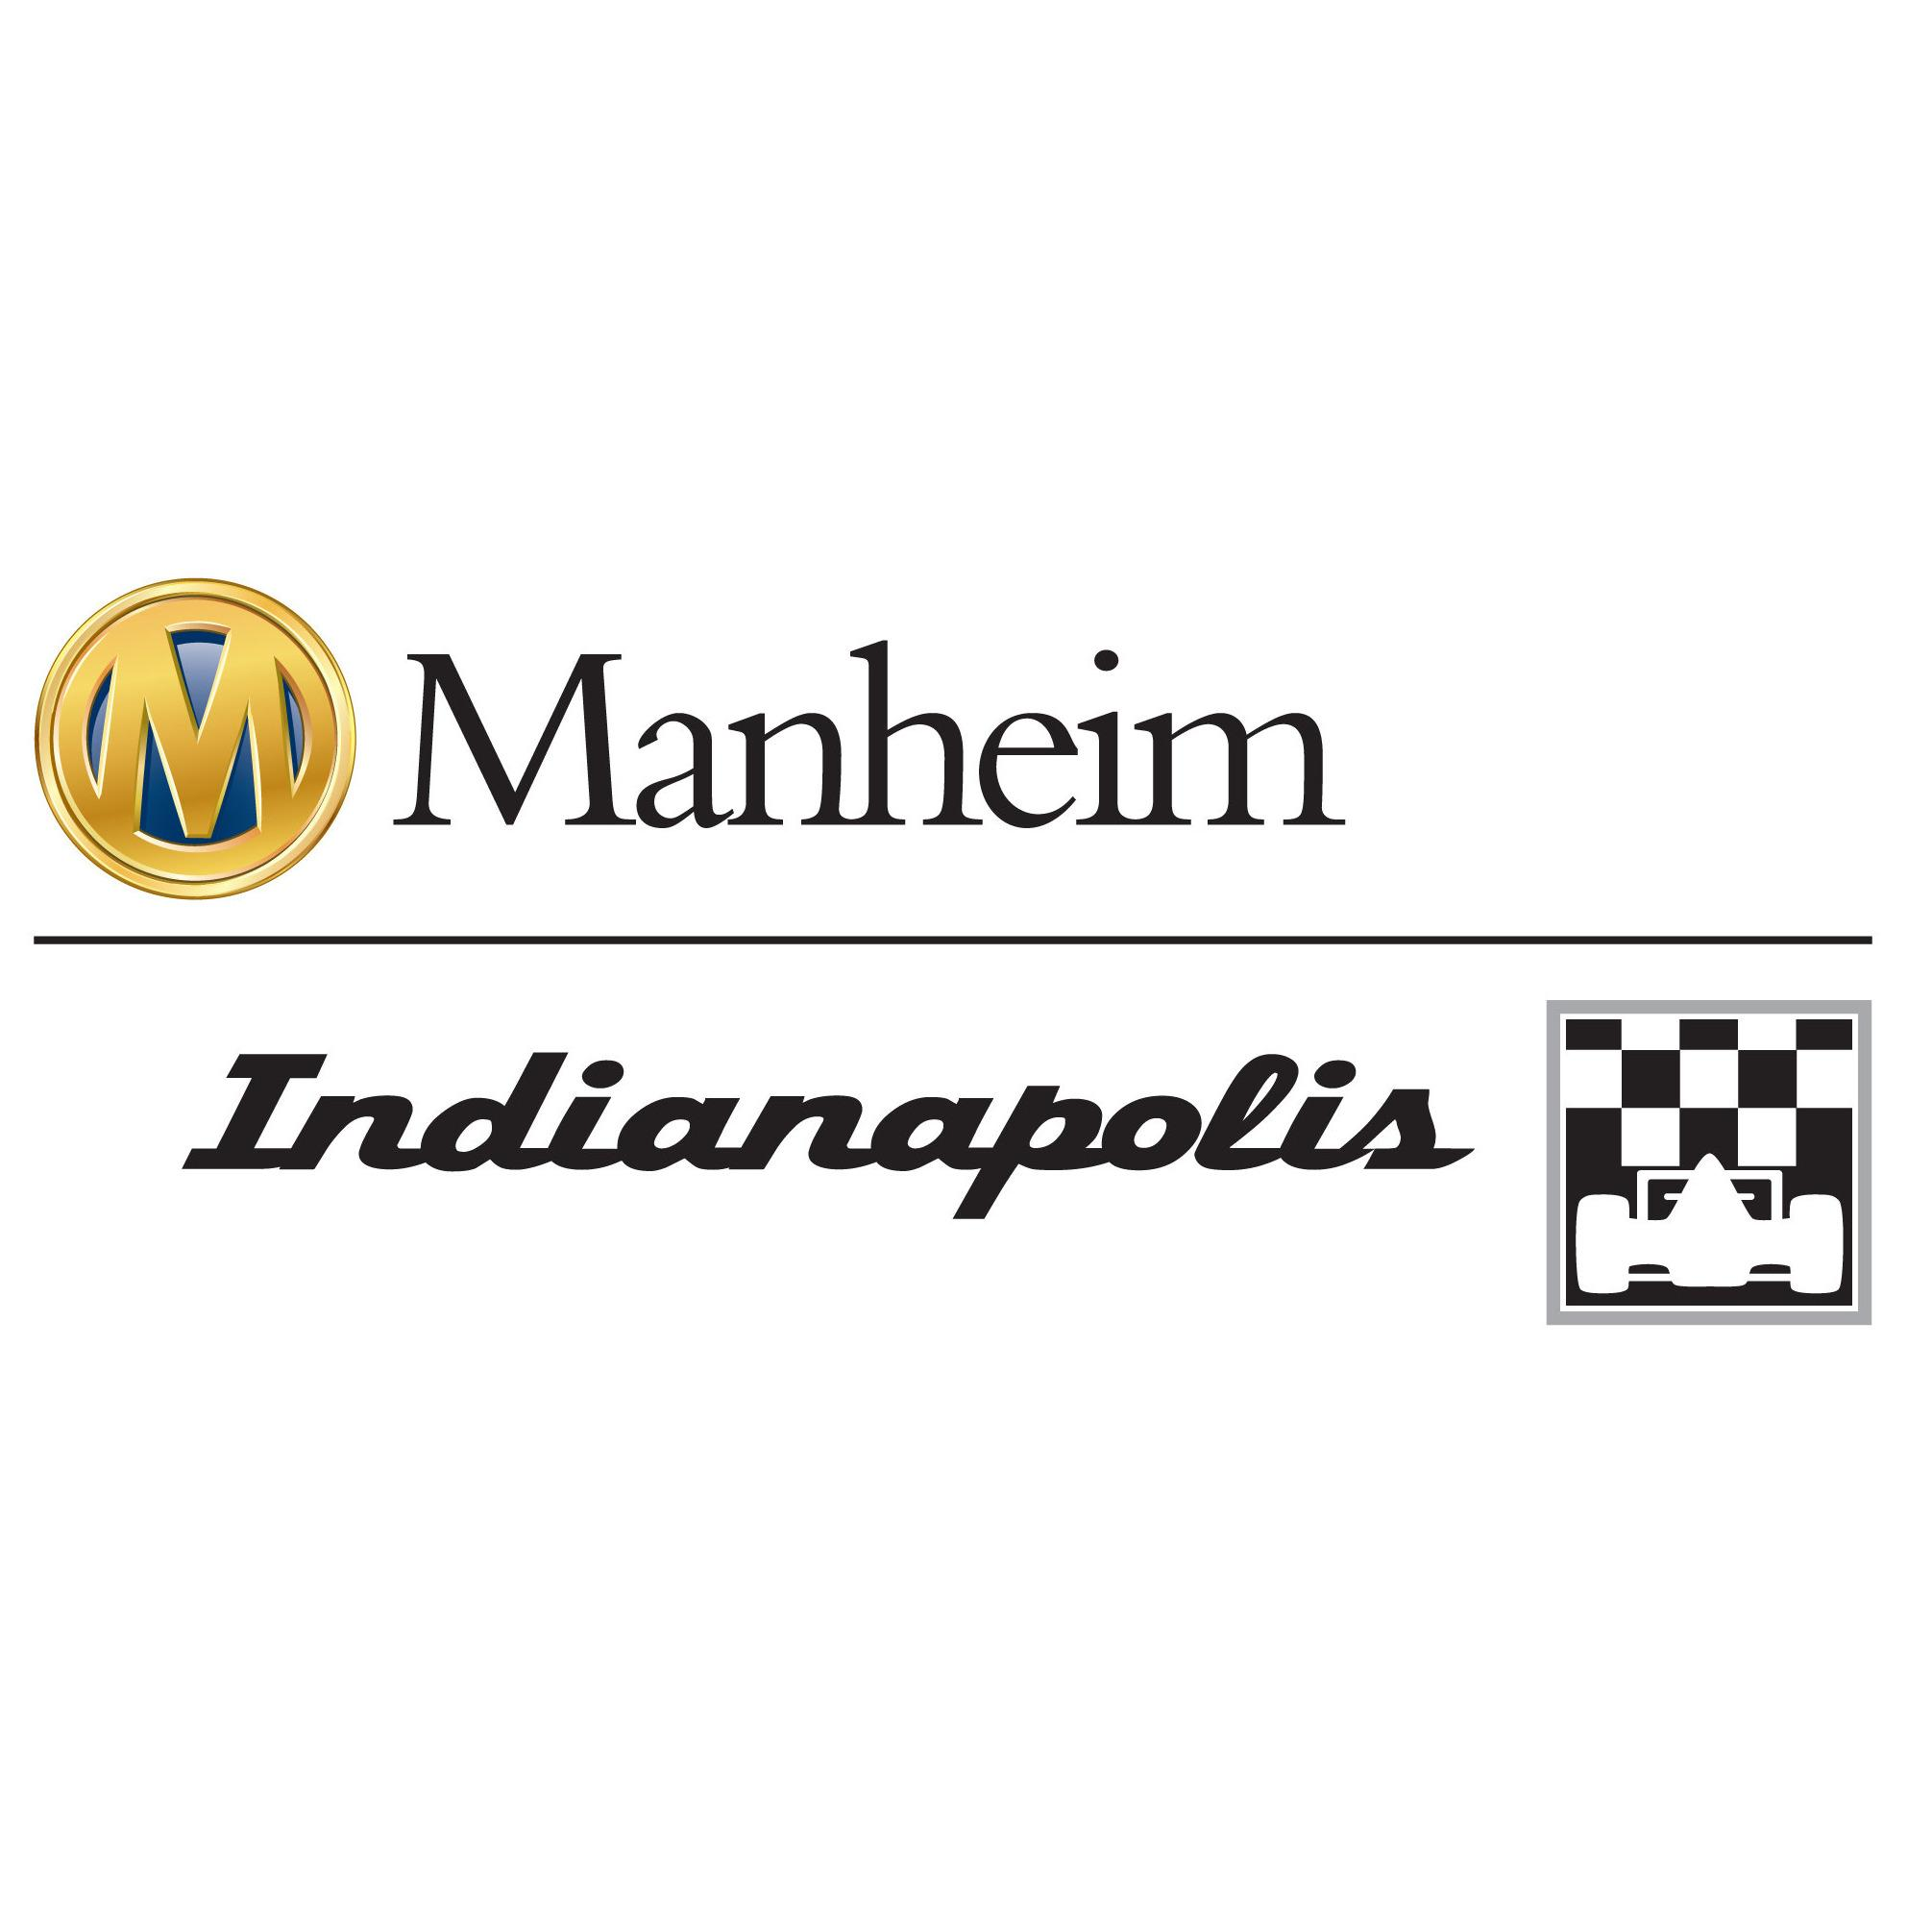 Manheim - Indianapolis   85 total results   Truckers Choice